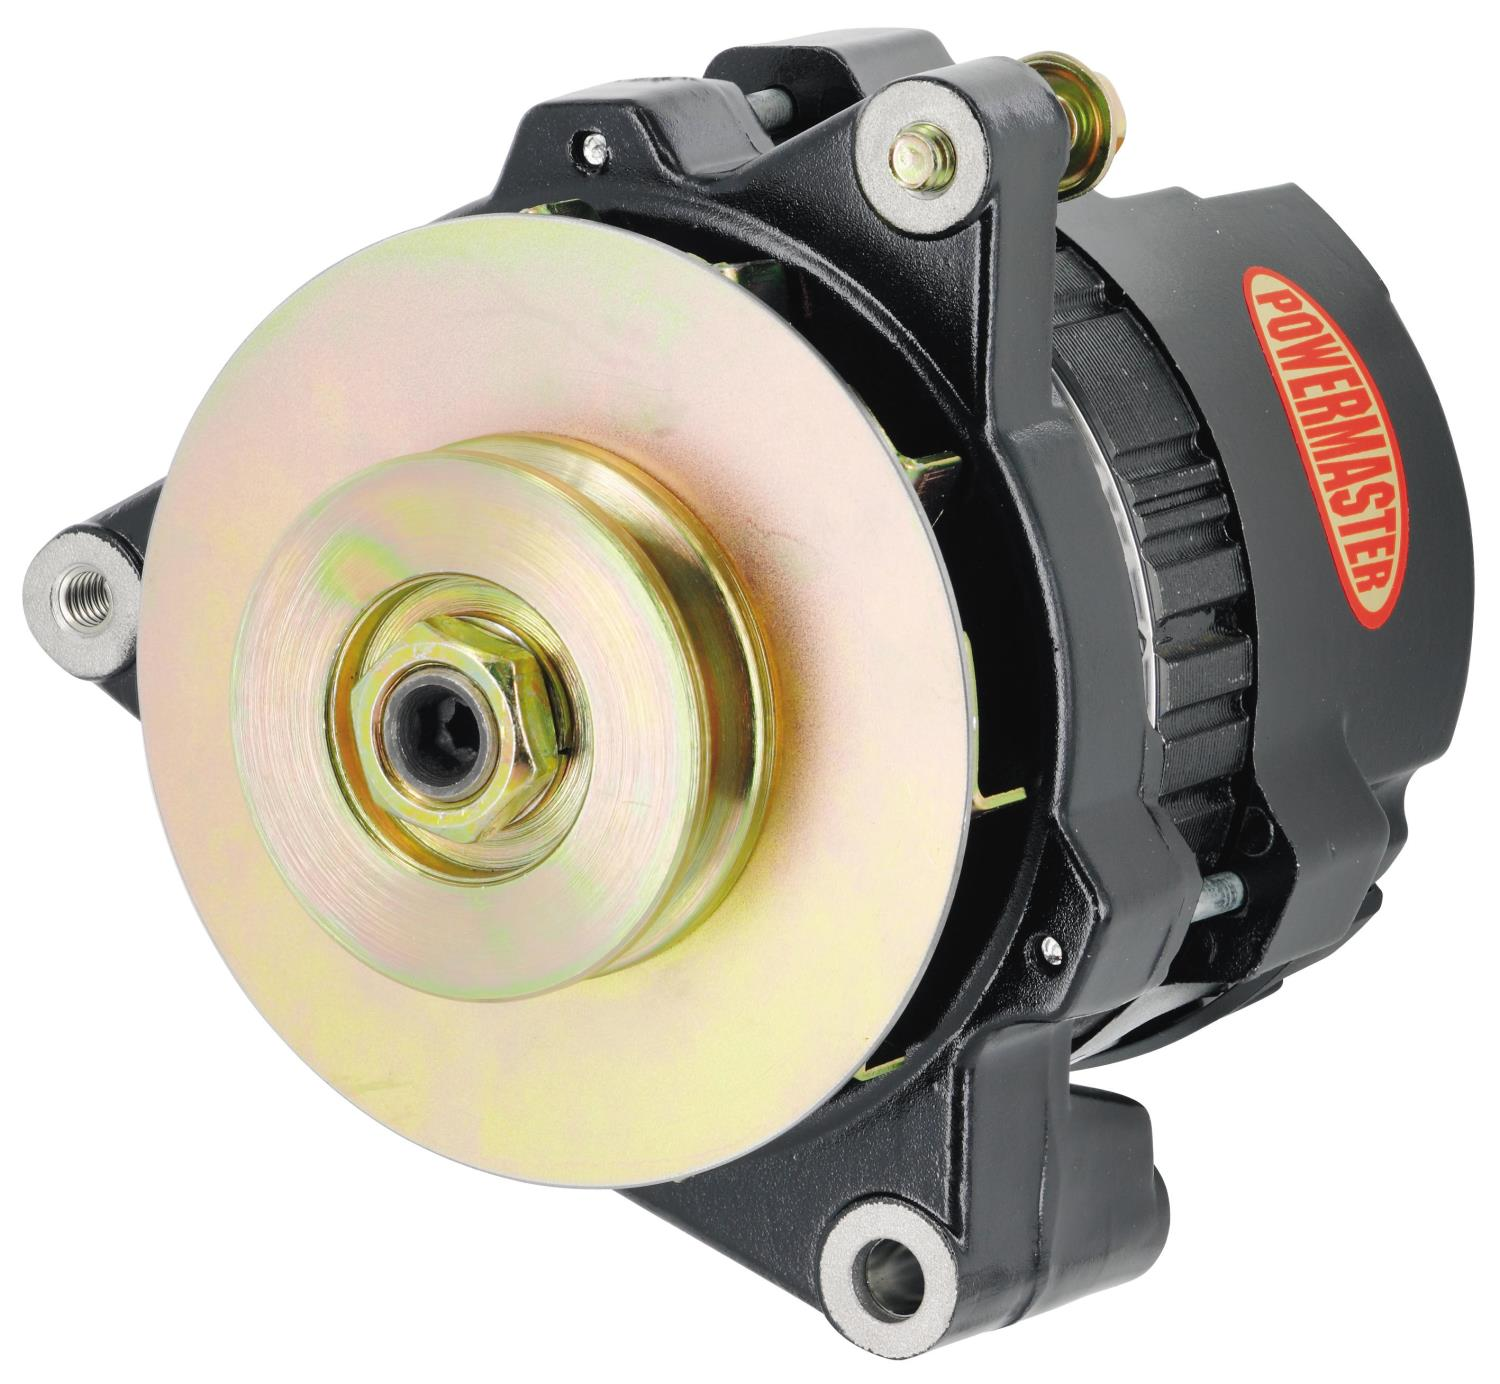 Powermaster 8476-104 - GM 5x5 Compact Race Alternators